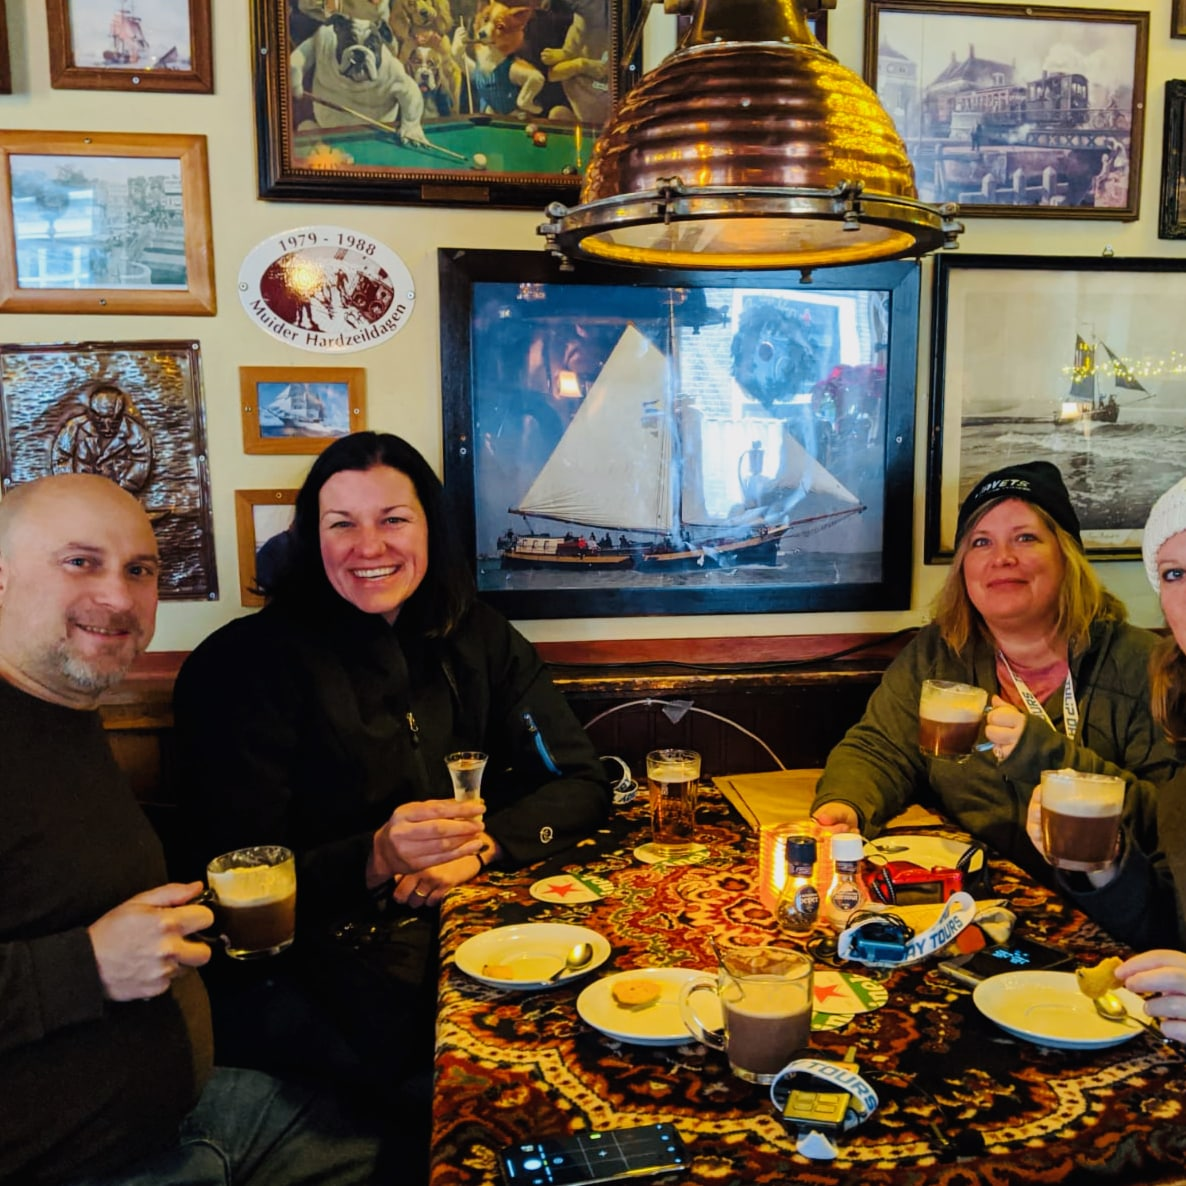 three women and one man enjoying hot beverages in an authentic old brown cafe in holland